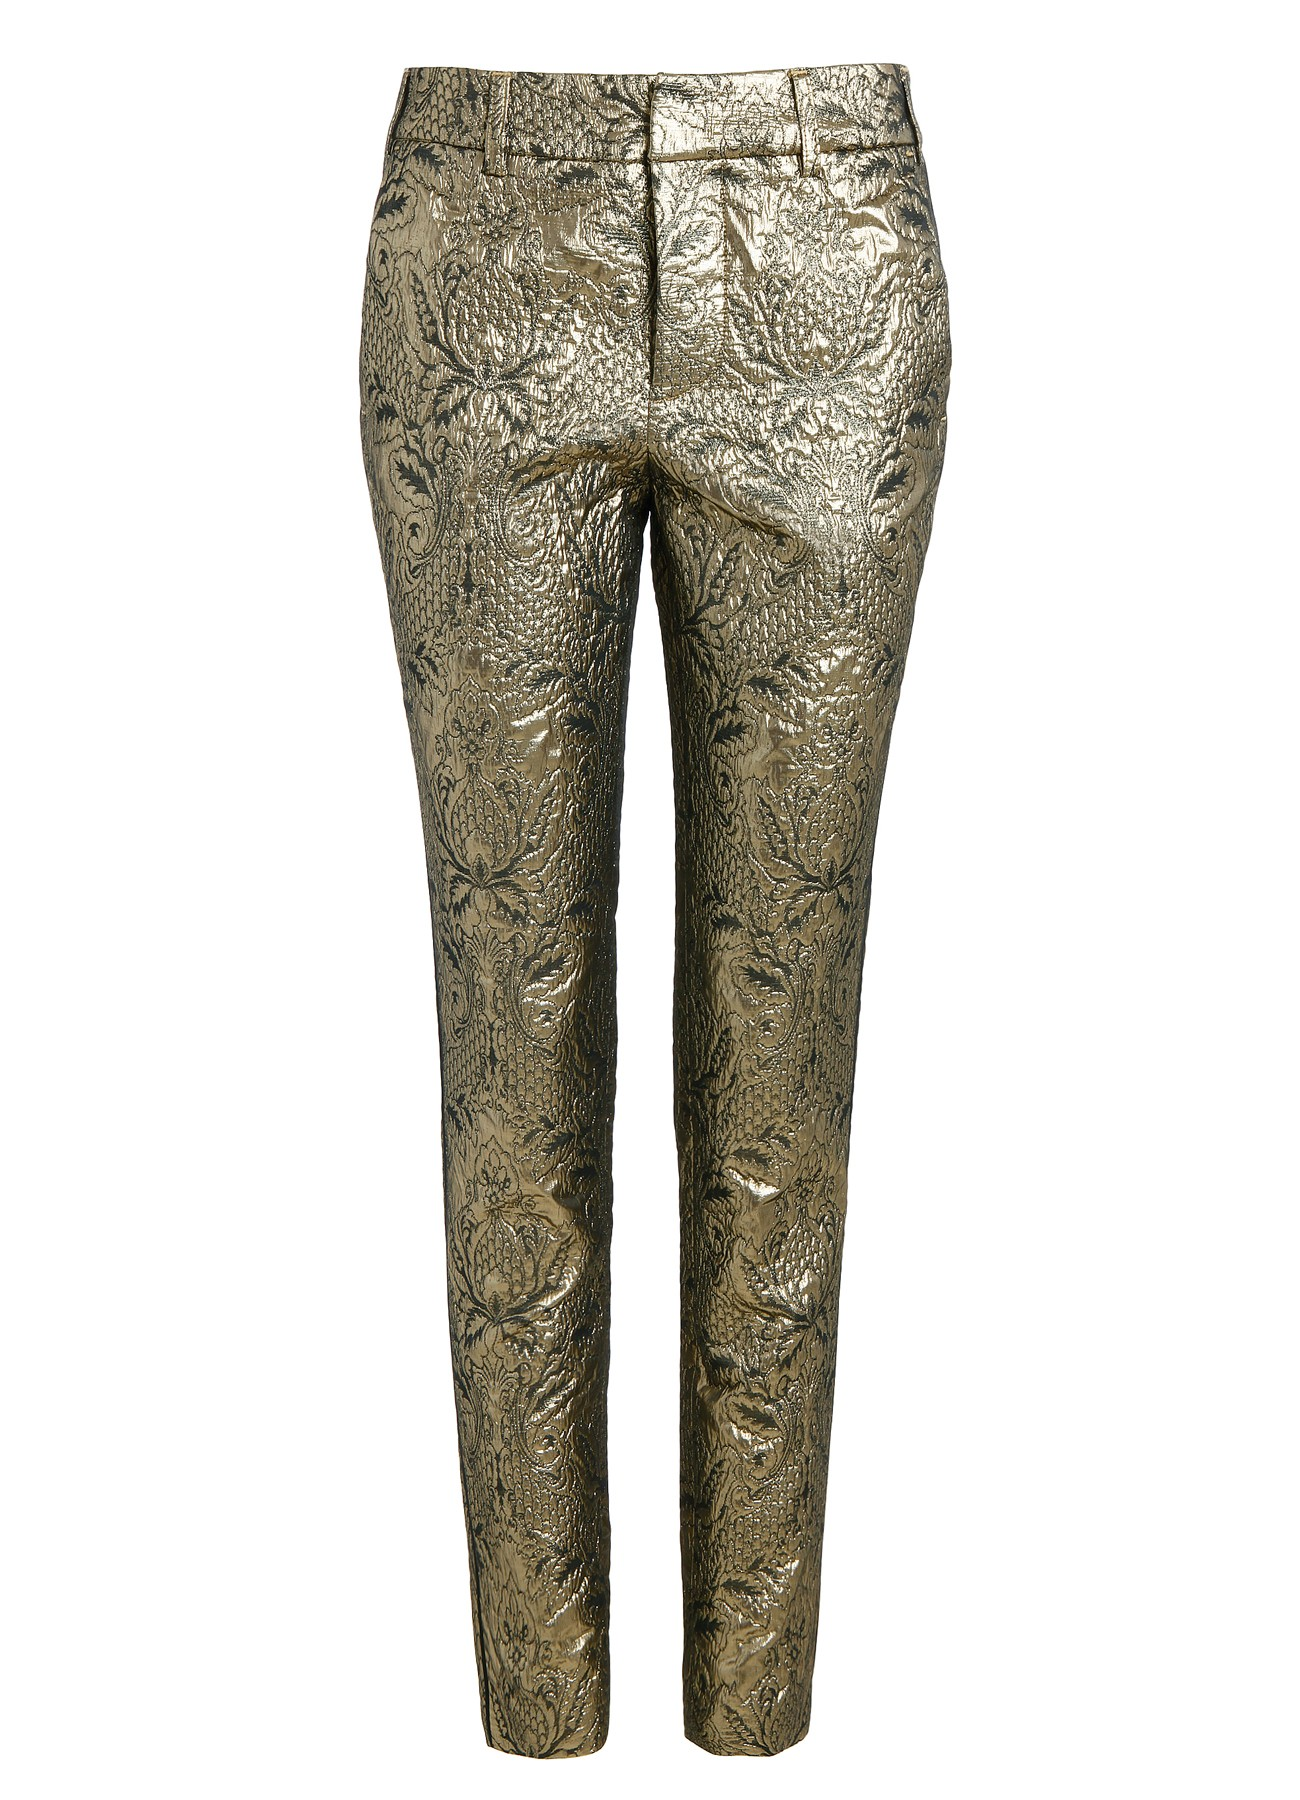 pants for  woman posh dore deluxe gold-Zadig&Voltaire